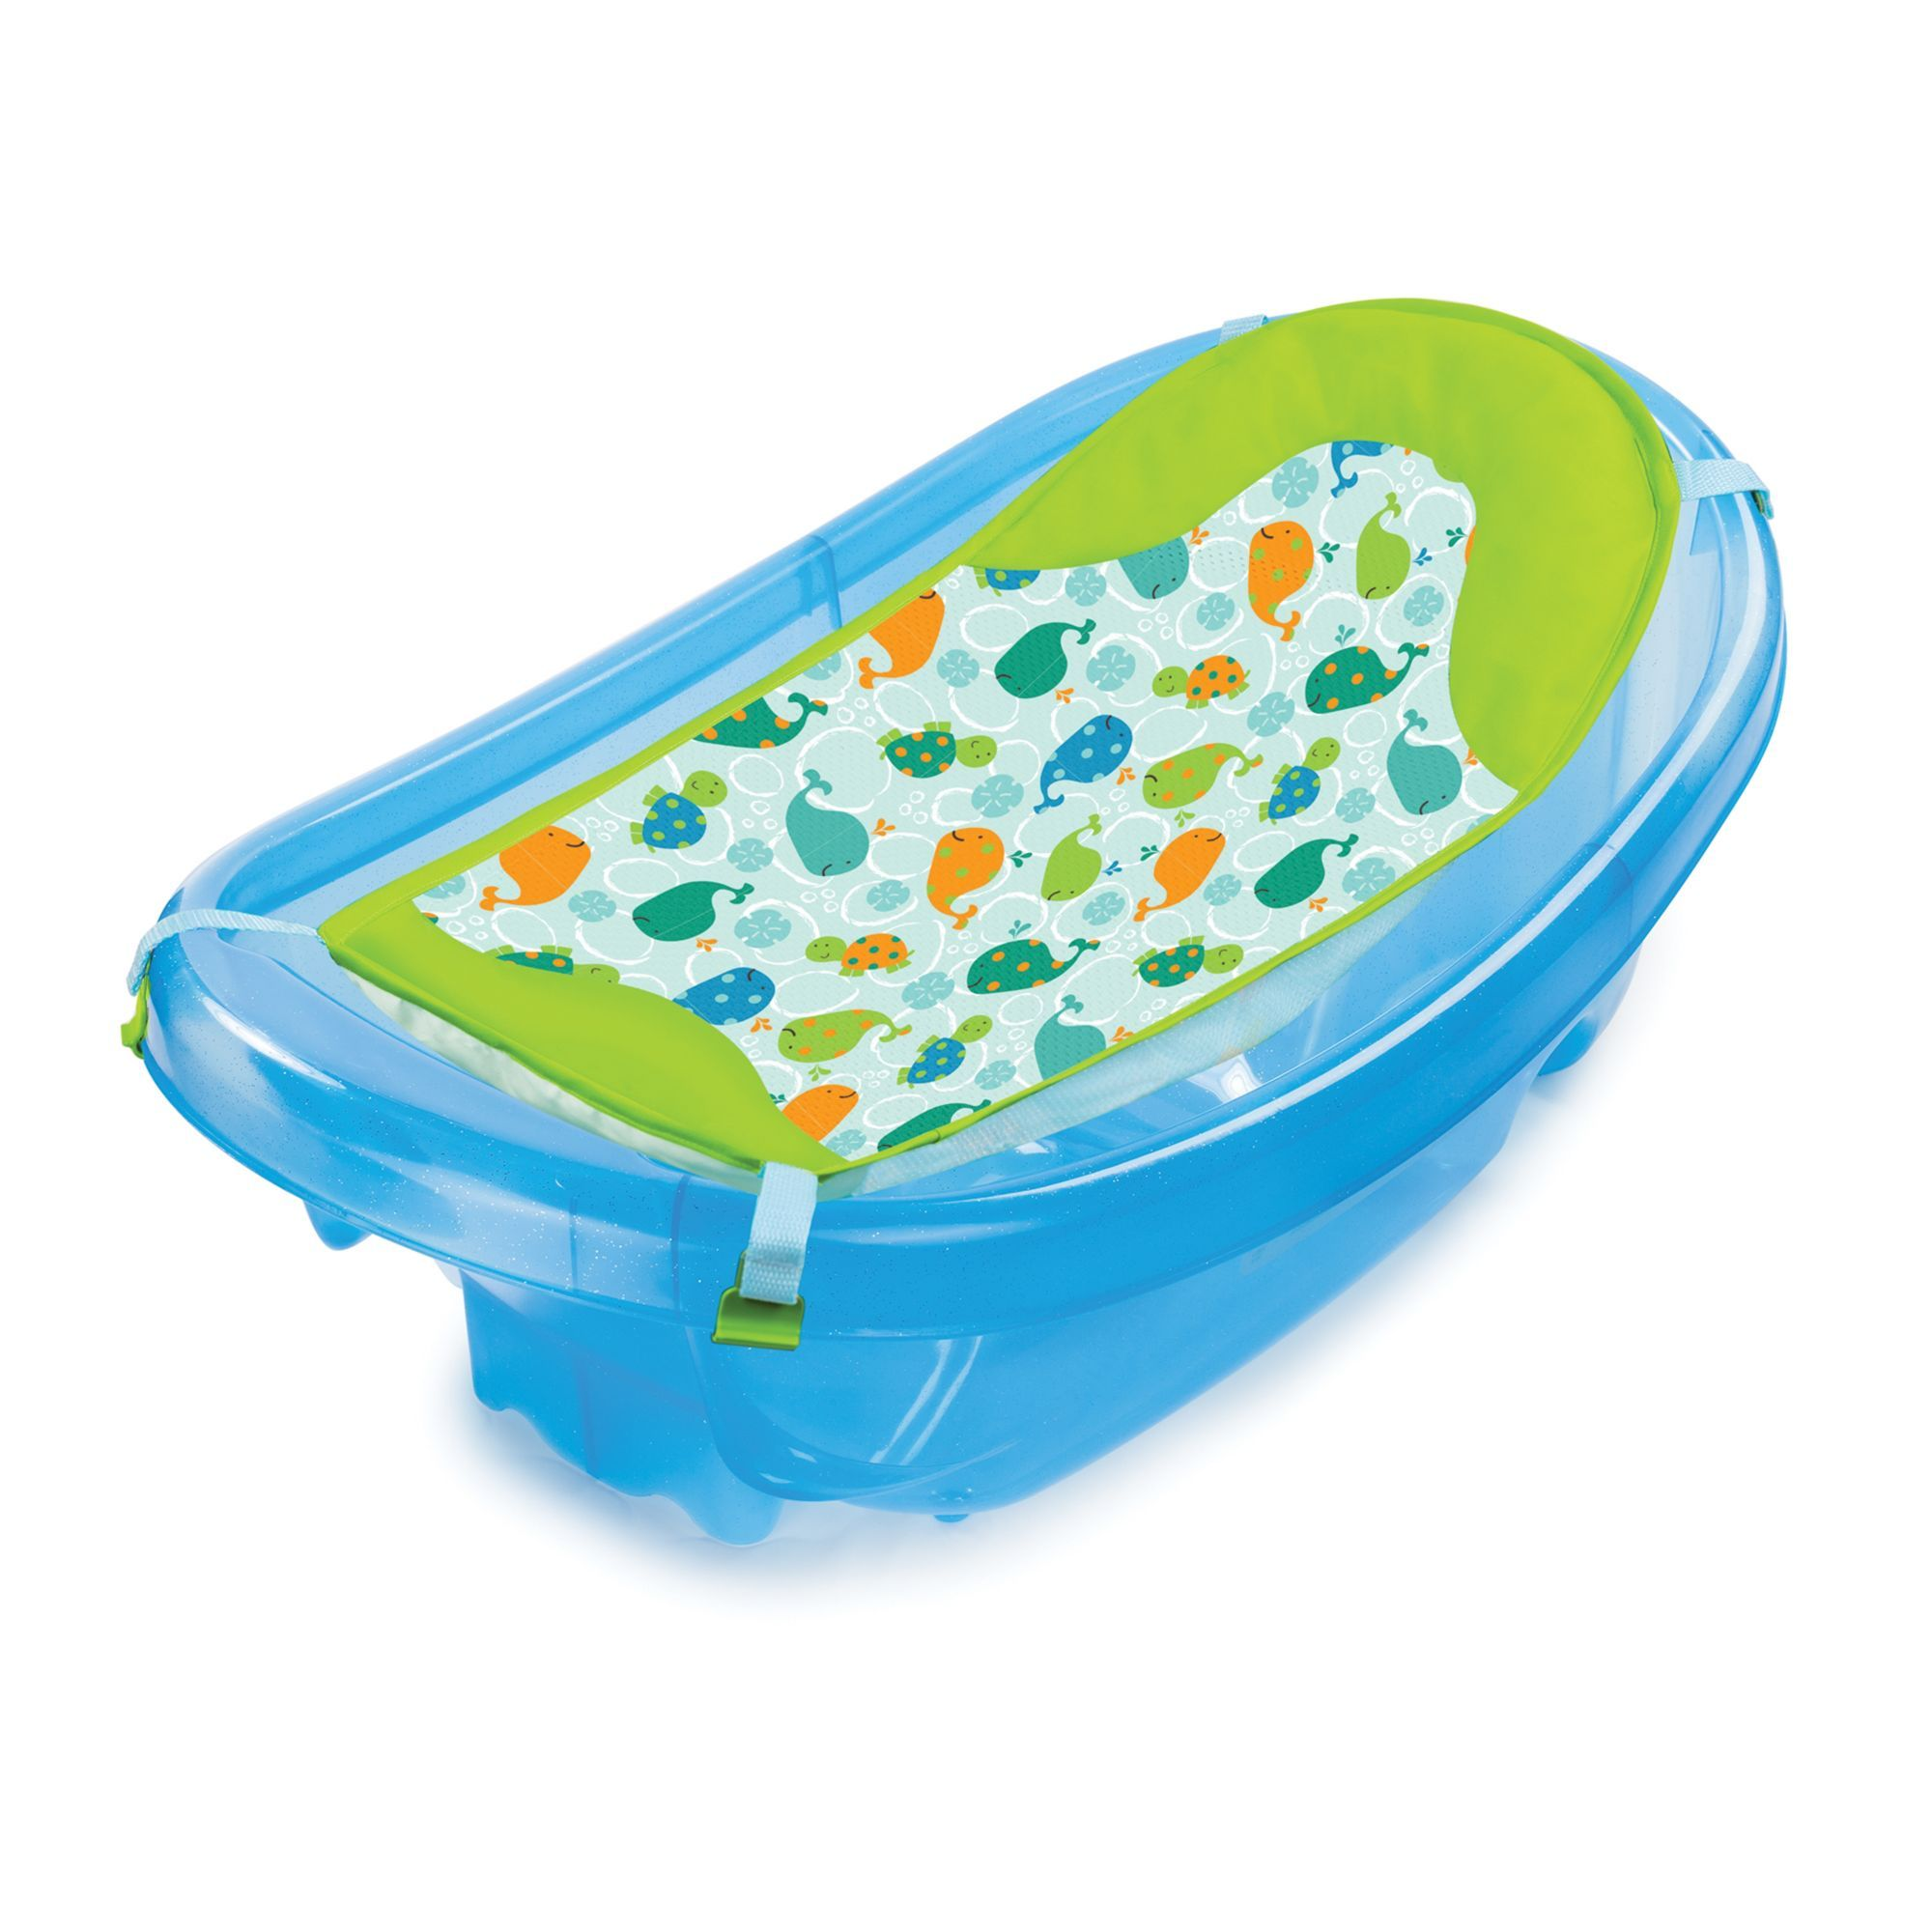 Baby Bath Chair Mothercare How To Make A Cover From Sheet Summer Infant Sparkle N Splash Tub Blue 28